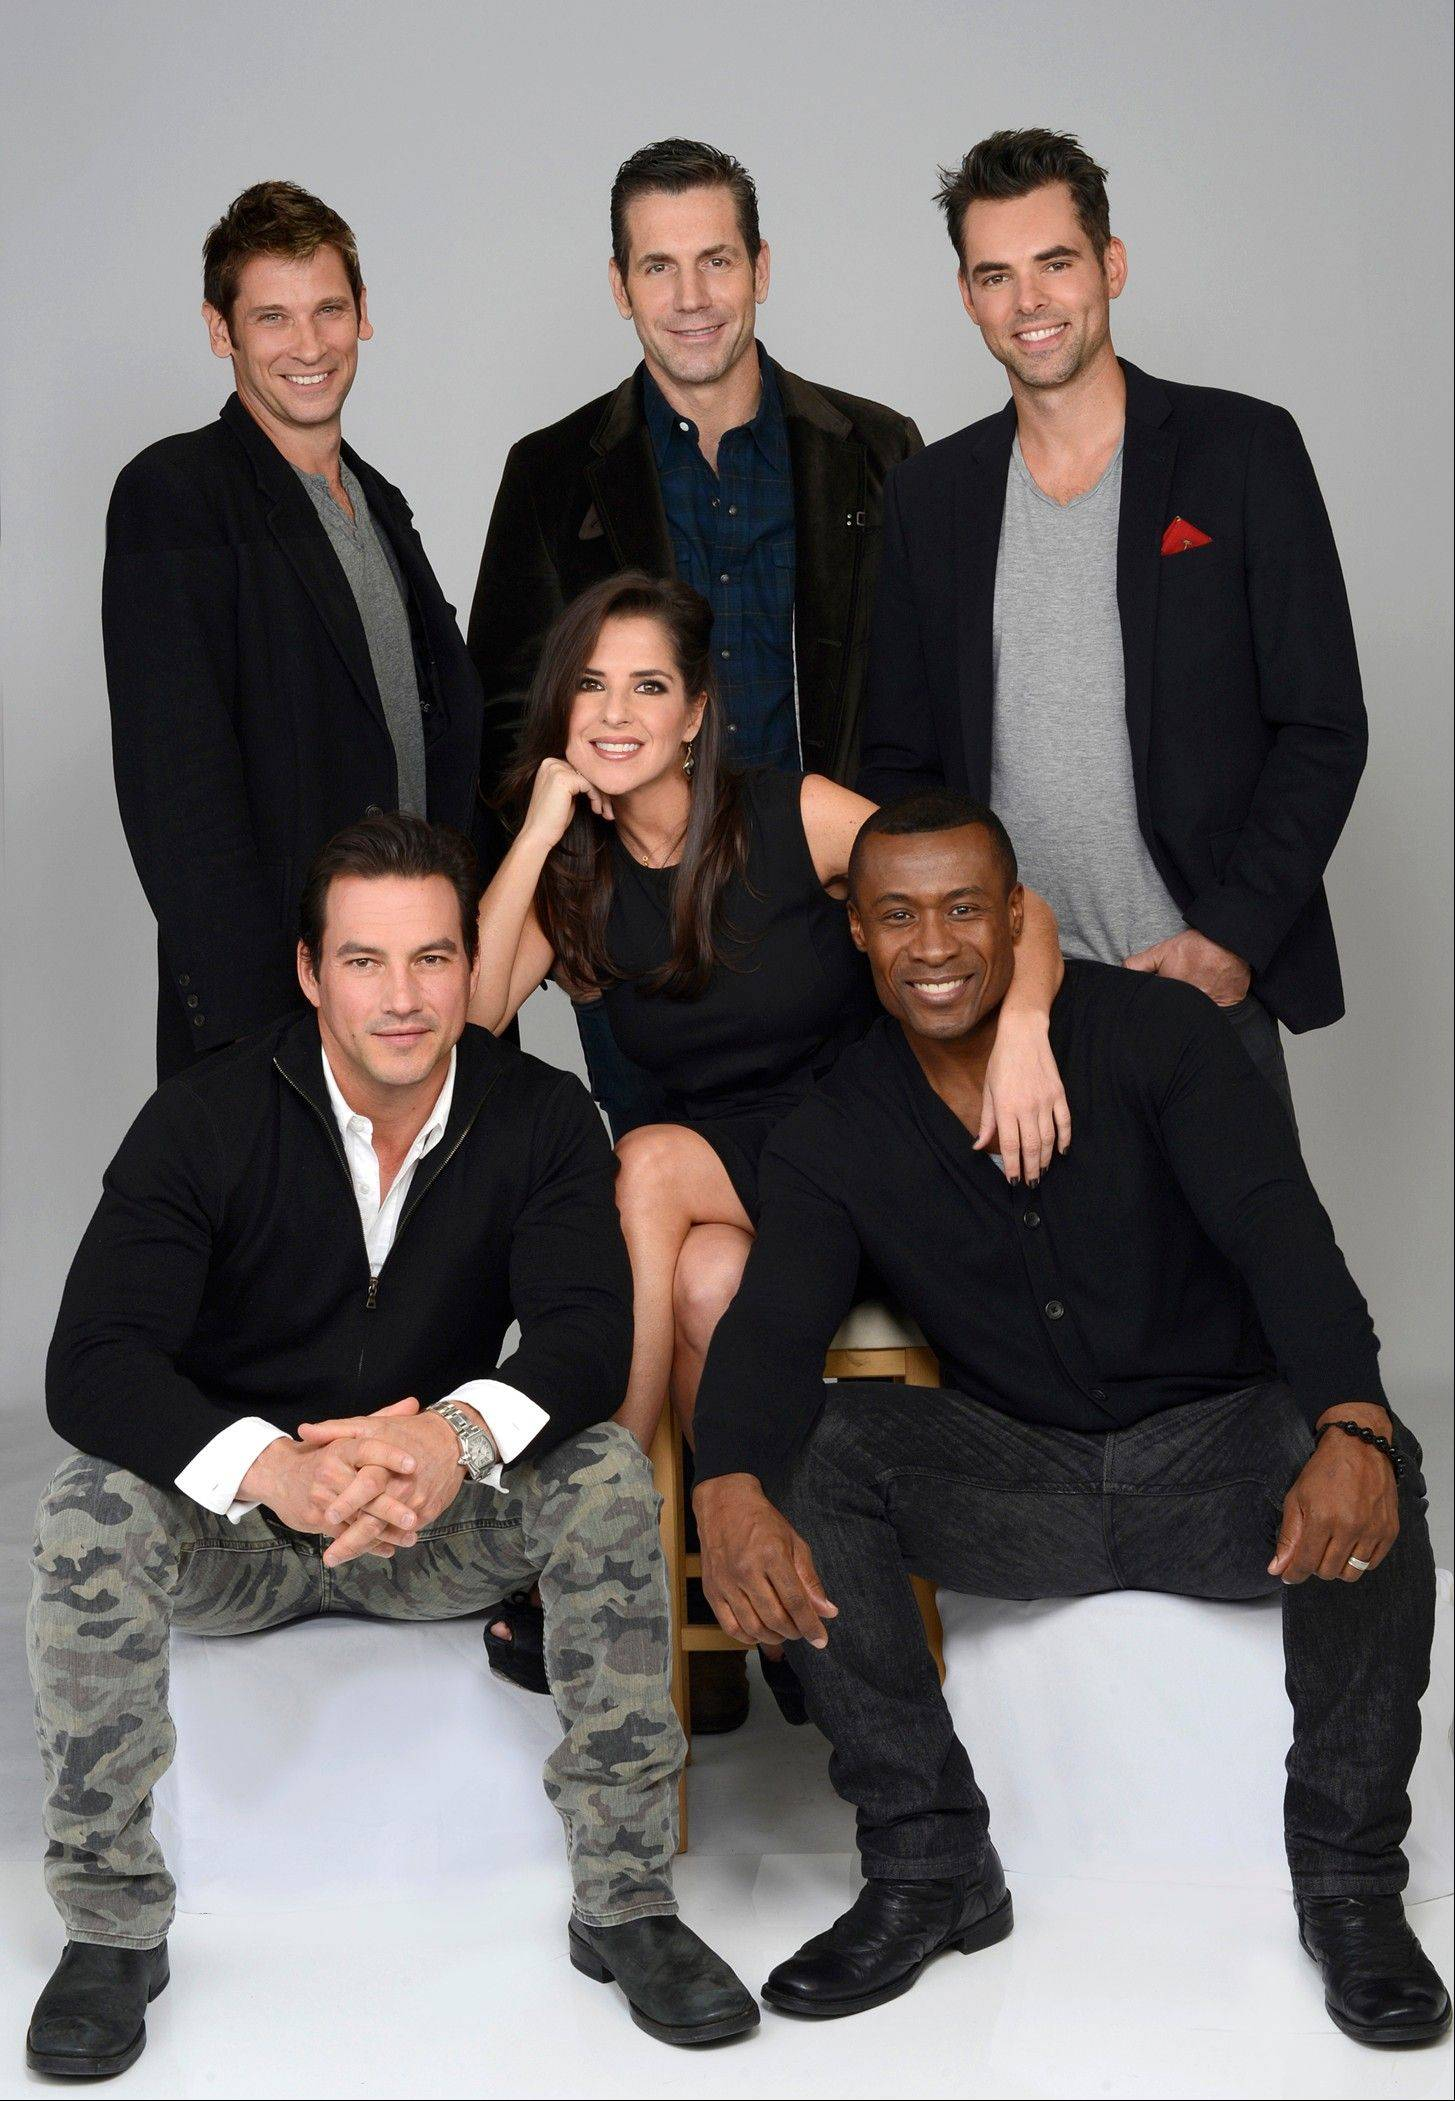 �General Hospital� actors Kelly Monaco, center, with, clockwise from front row left, Tyler Christopher, Roger Howarth, Executive Producer Frank Valenti, Jason Thompson and Sean Blakemore in New York. The popular daytime drama celebrates it�s 50th anniversary this year.